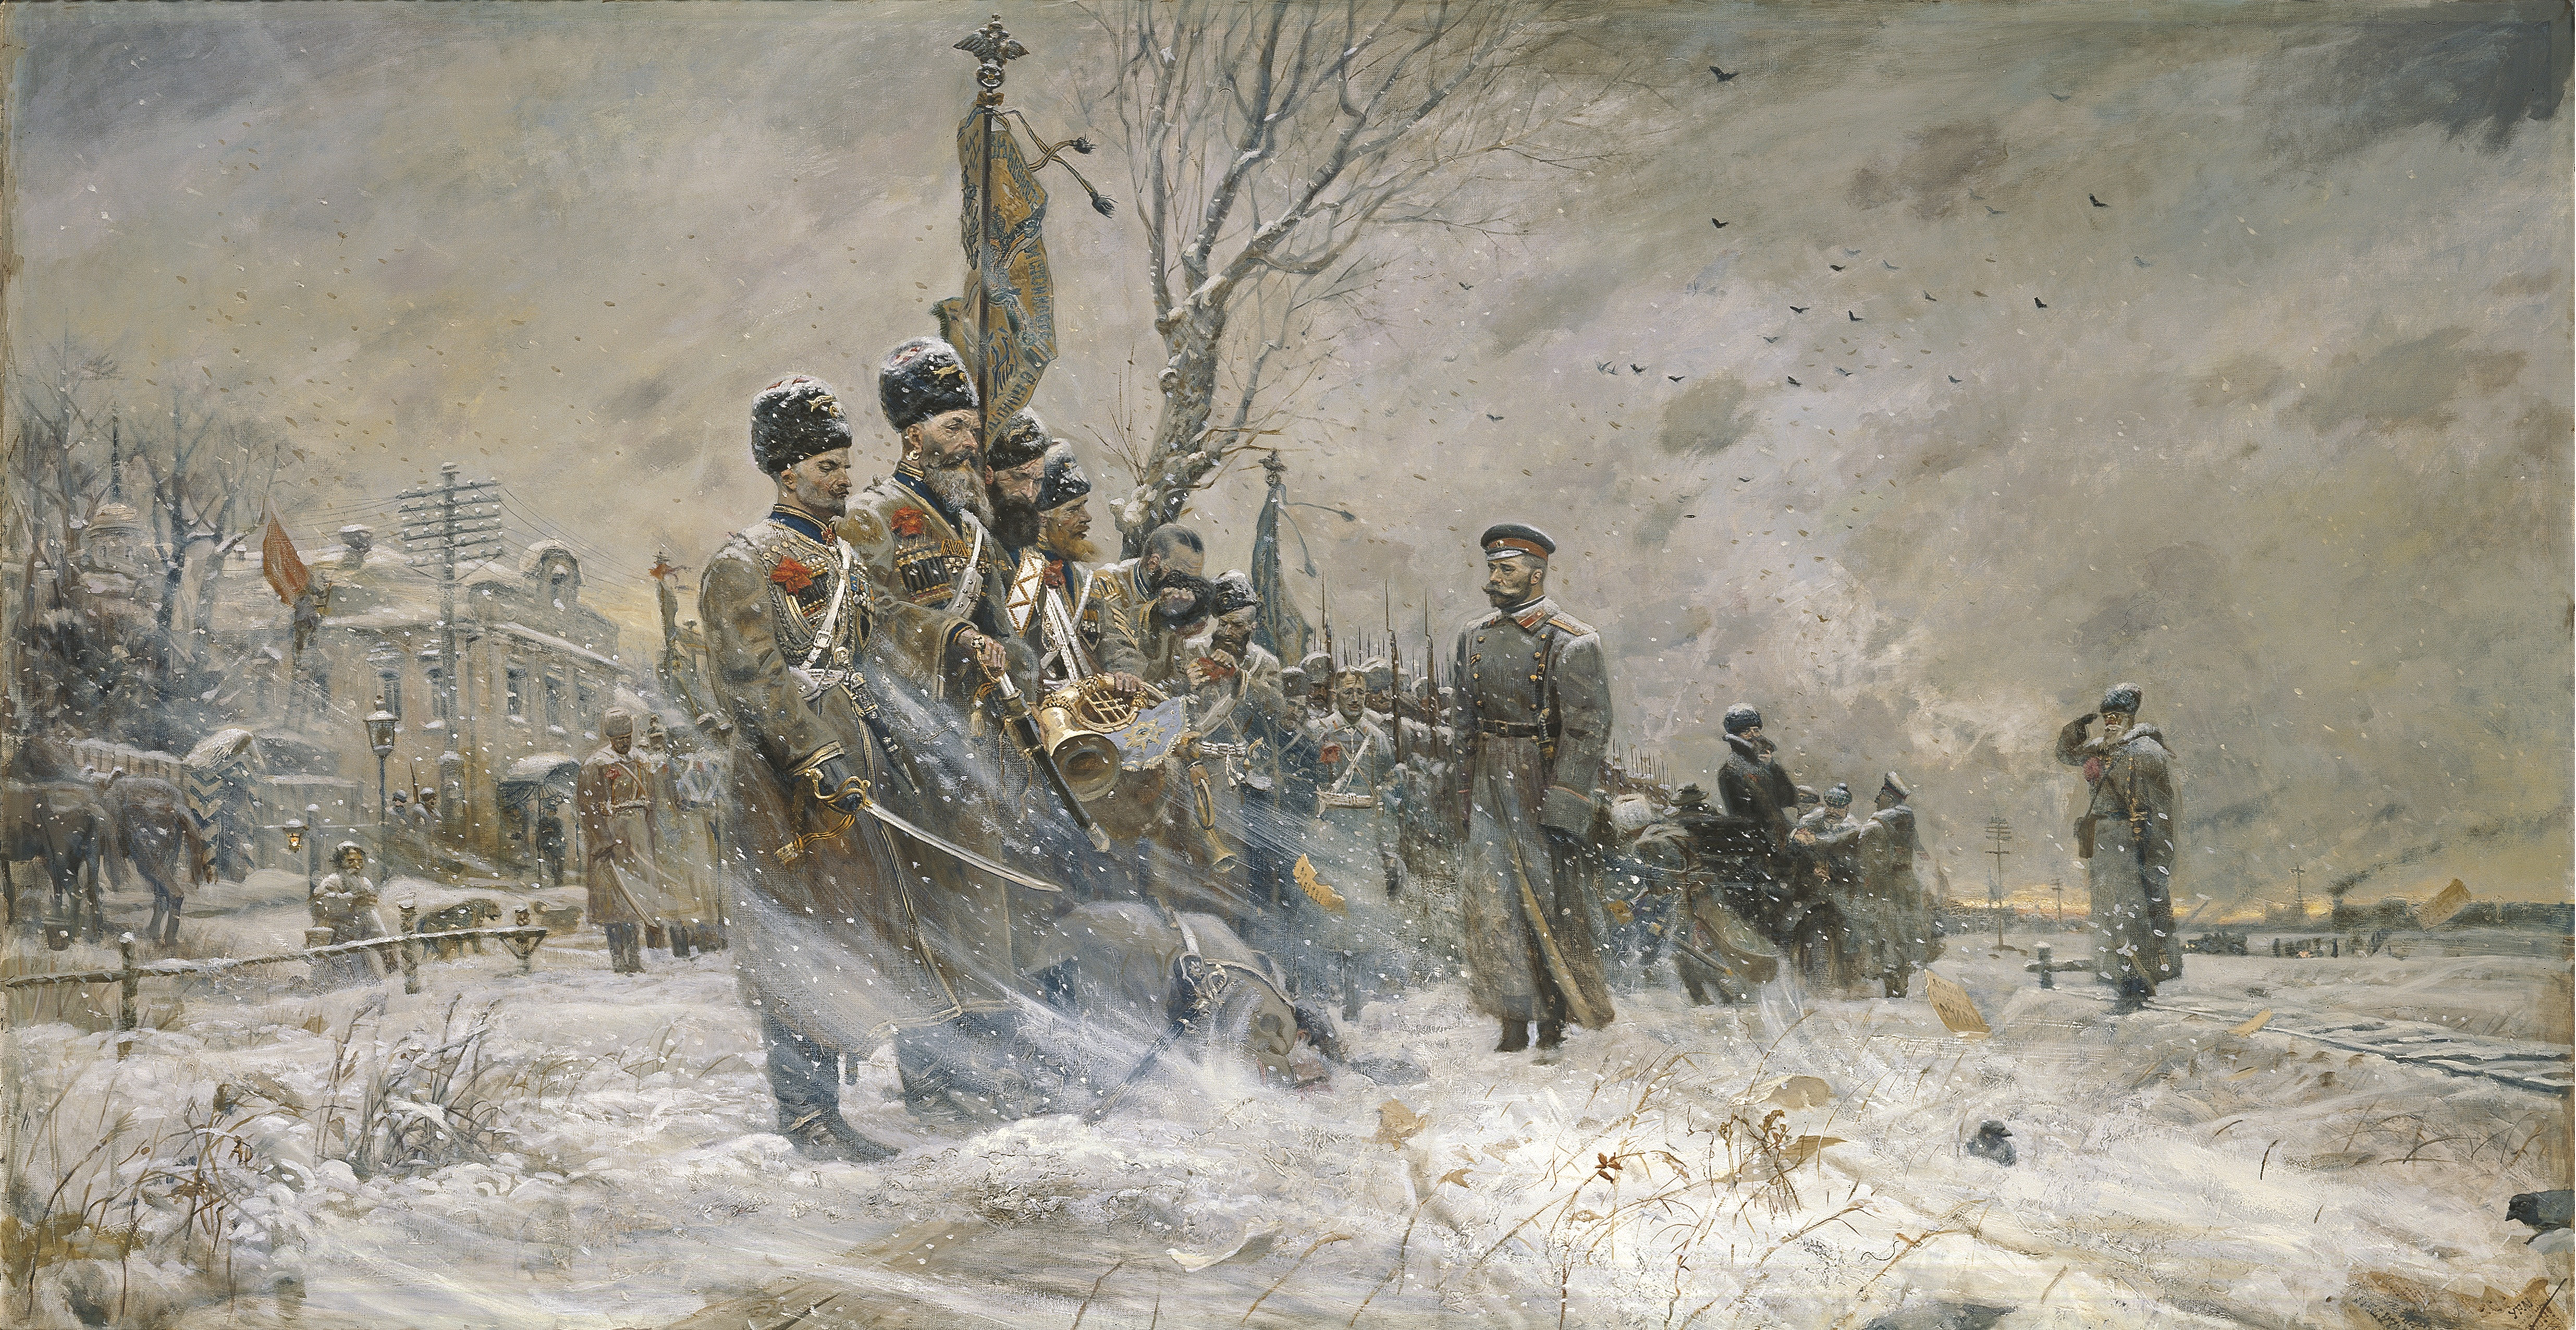 """'The Last Inspection"""" depicting Tsar Nicholas II inspecting the cossacks of the convoy at Pskov March 15, 1917 after he abdicated. The men of the unit in many cases had been with the sovereign for decades and at that moment, was the last loyal force in the country."""